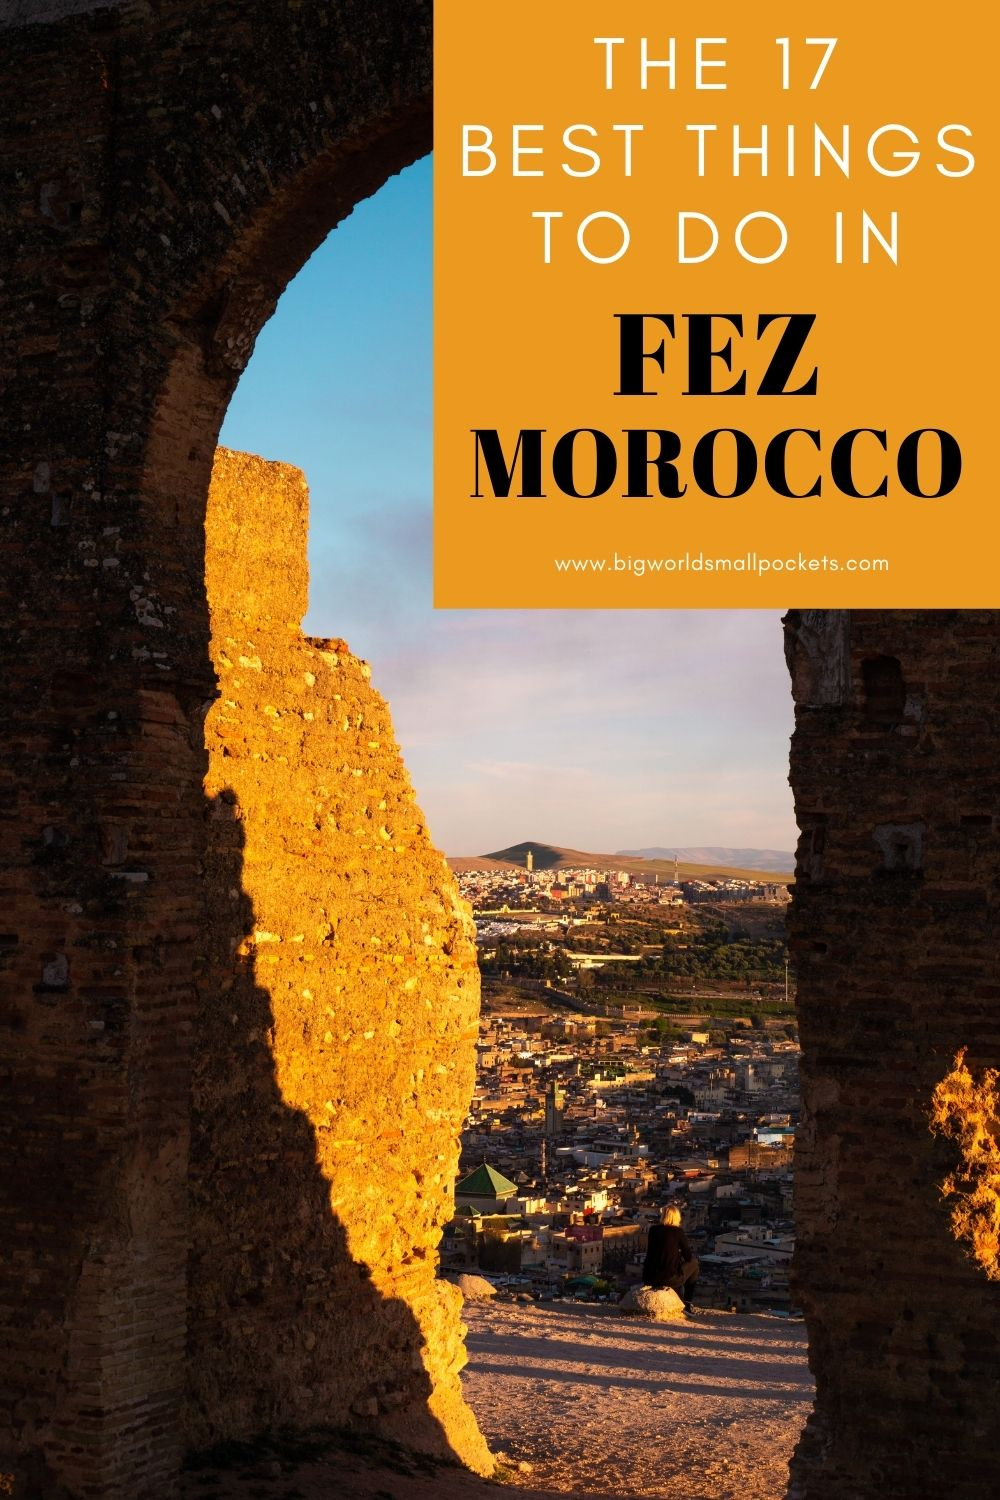 The 17 Best Things to Do in Fez, Morocco